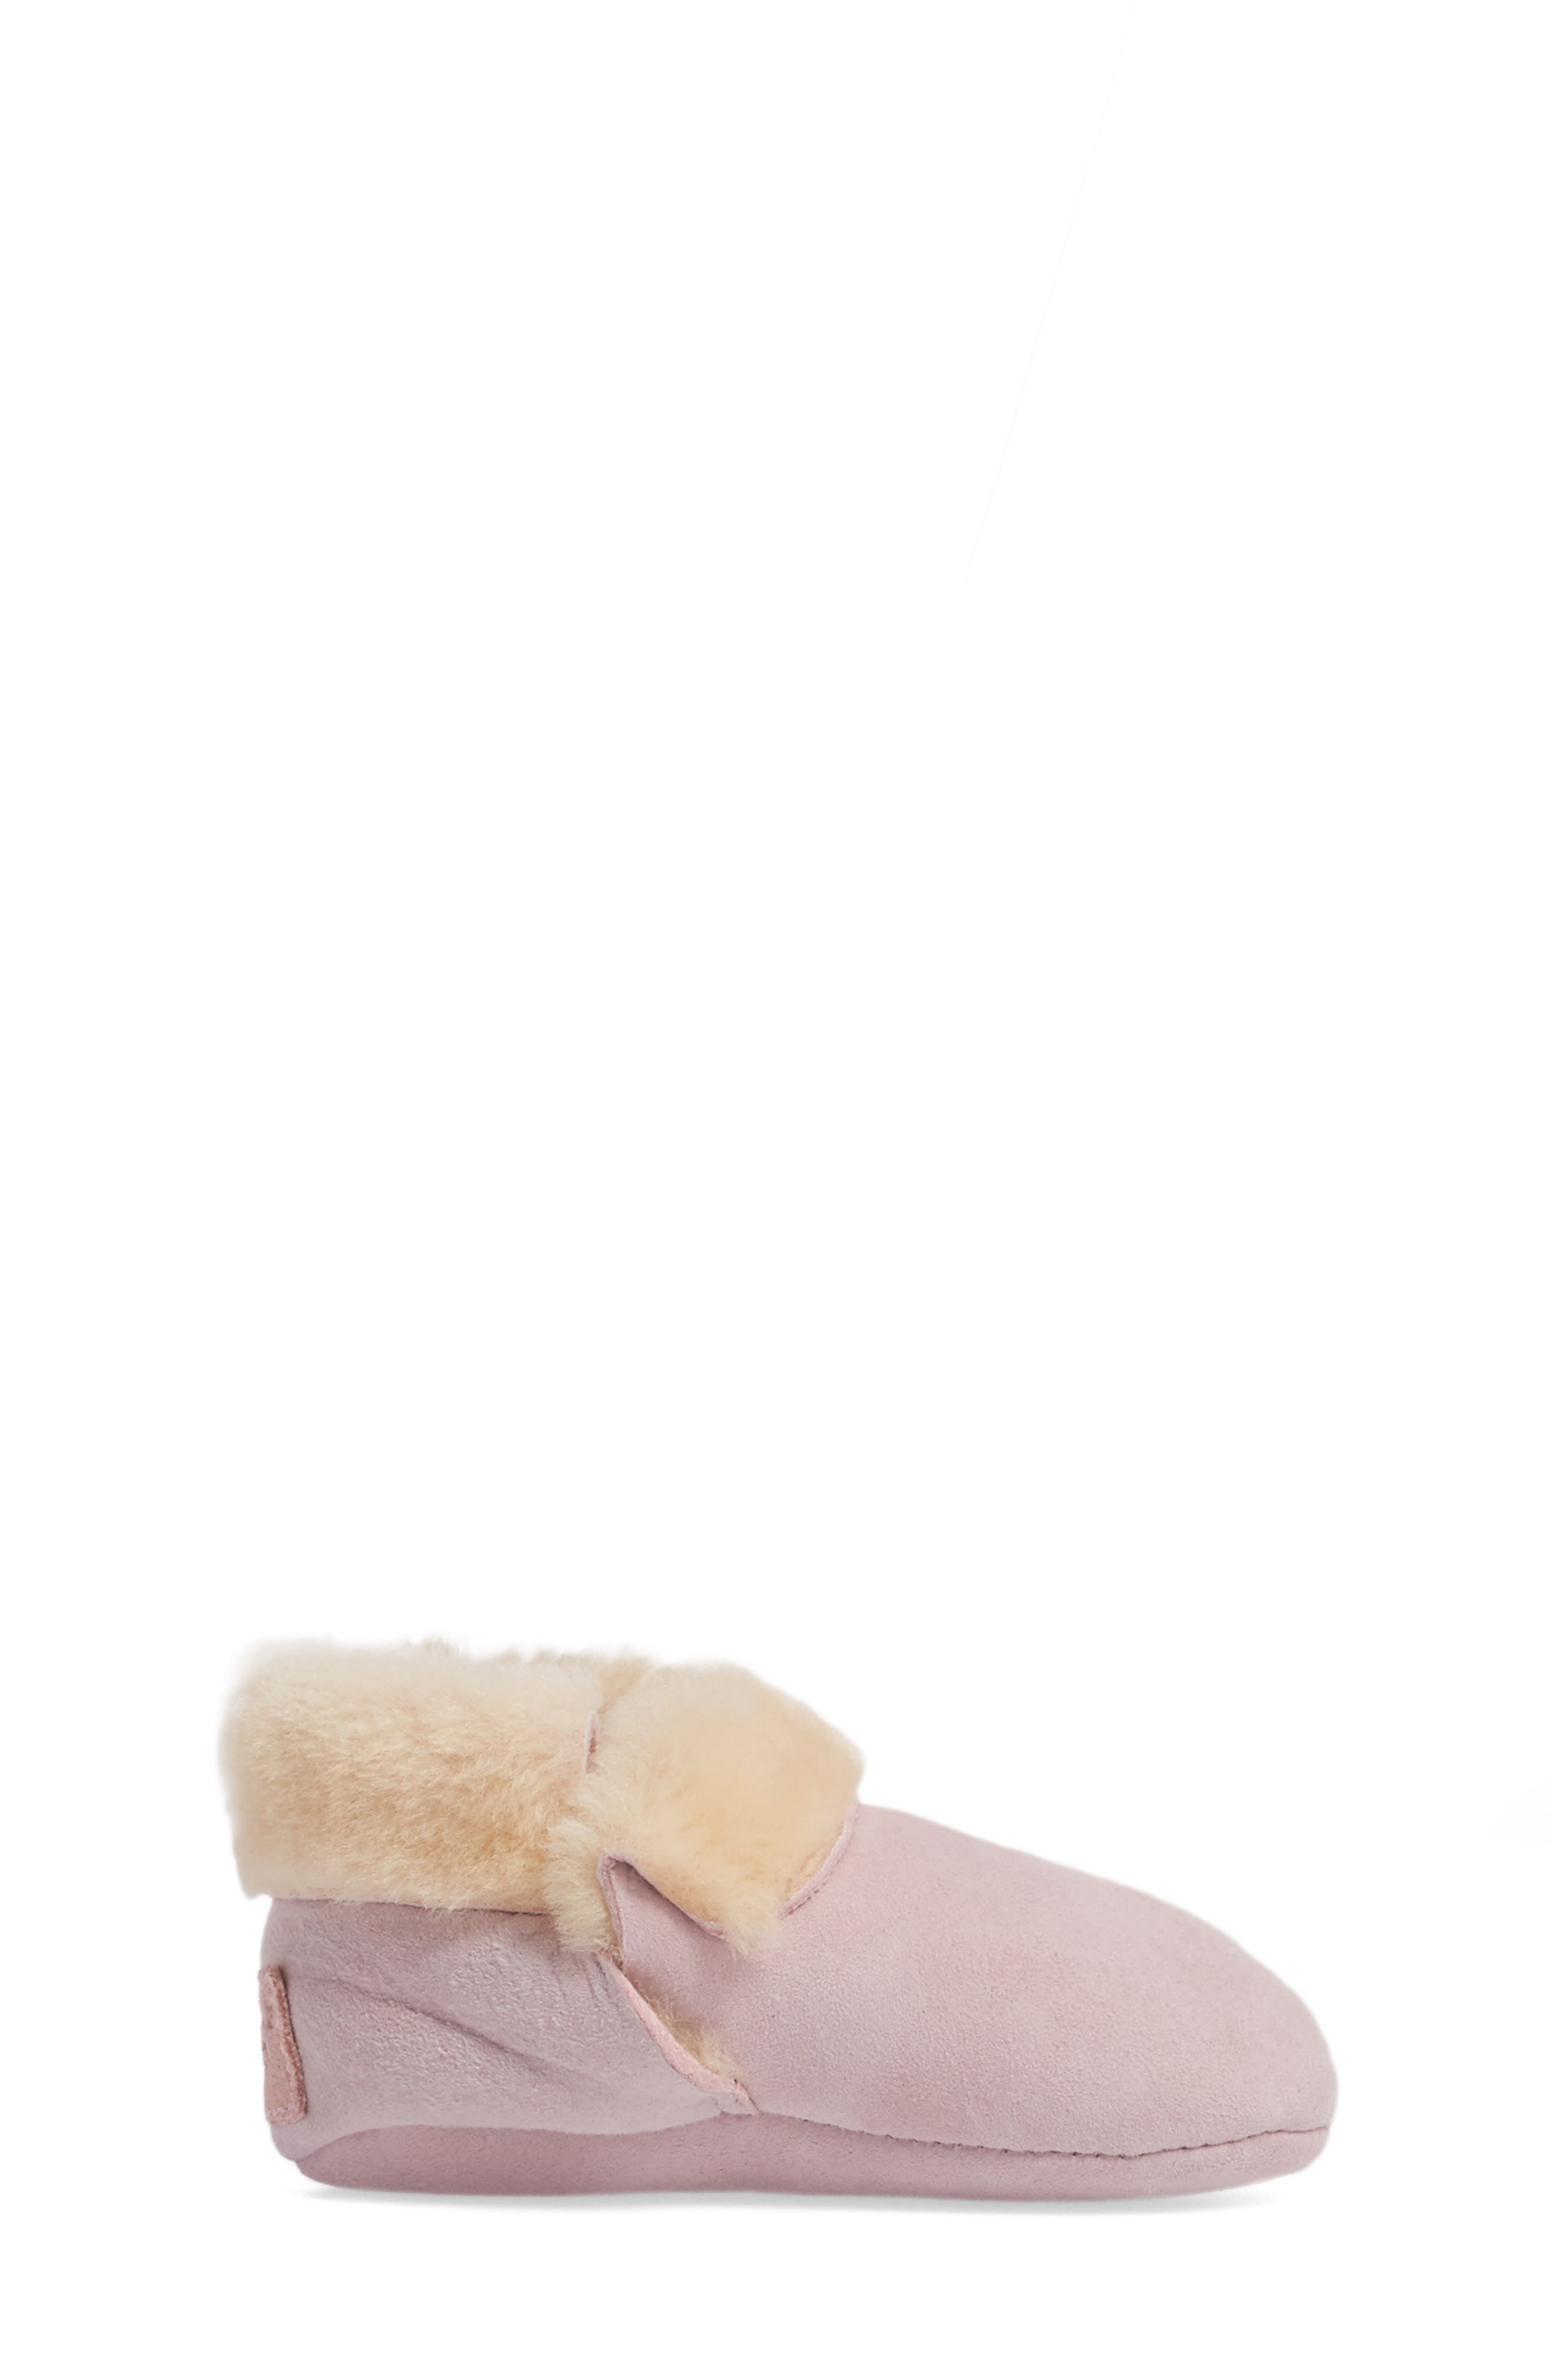 Solvi Genuine Shearling Low Cuffed Bootie,                             Alternate thumbnail 3, color,                             650